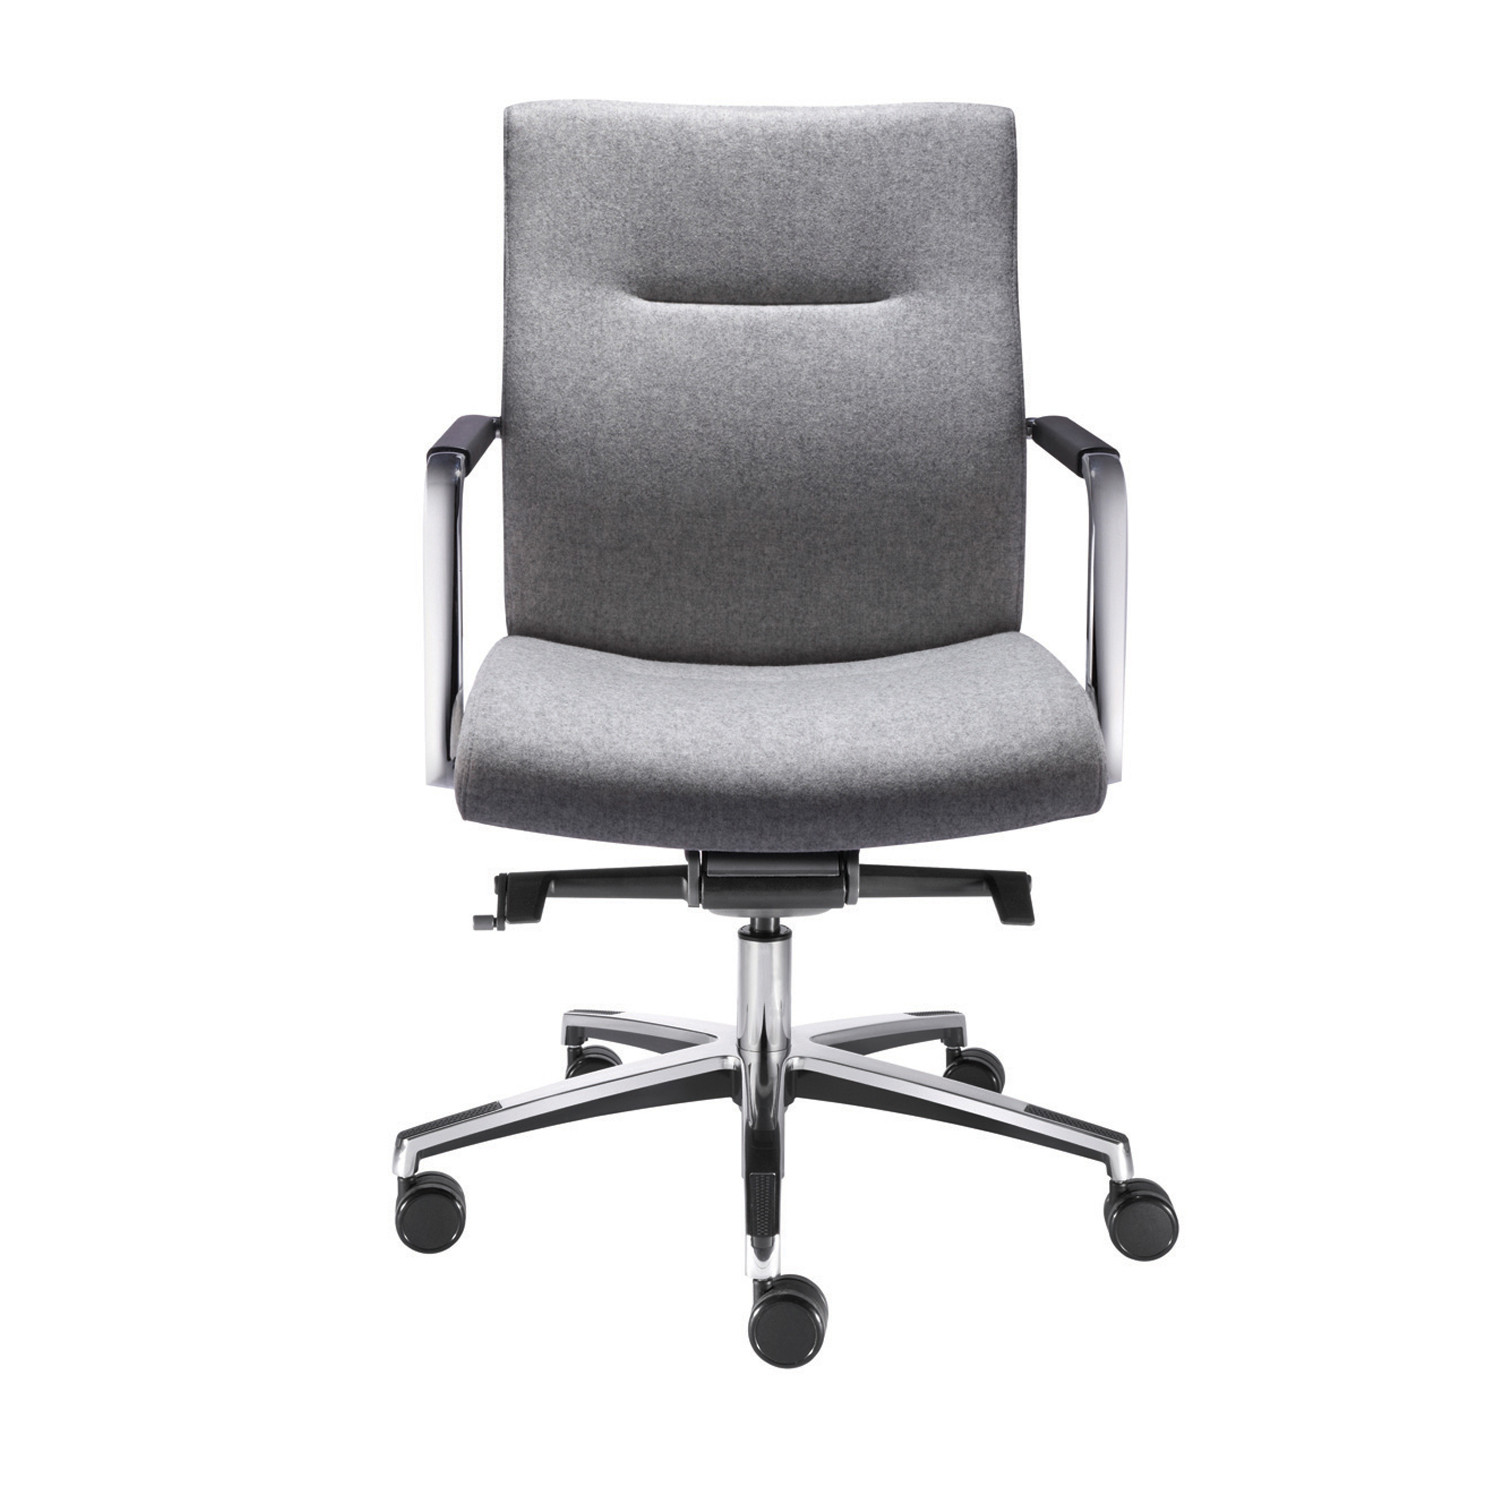 IS Exec High Specification Chair